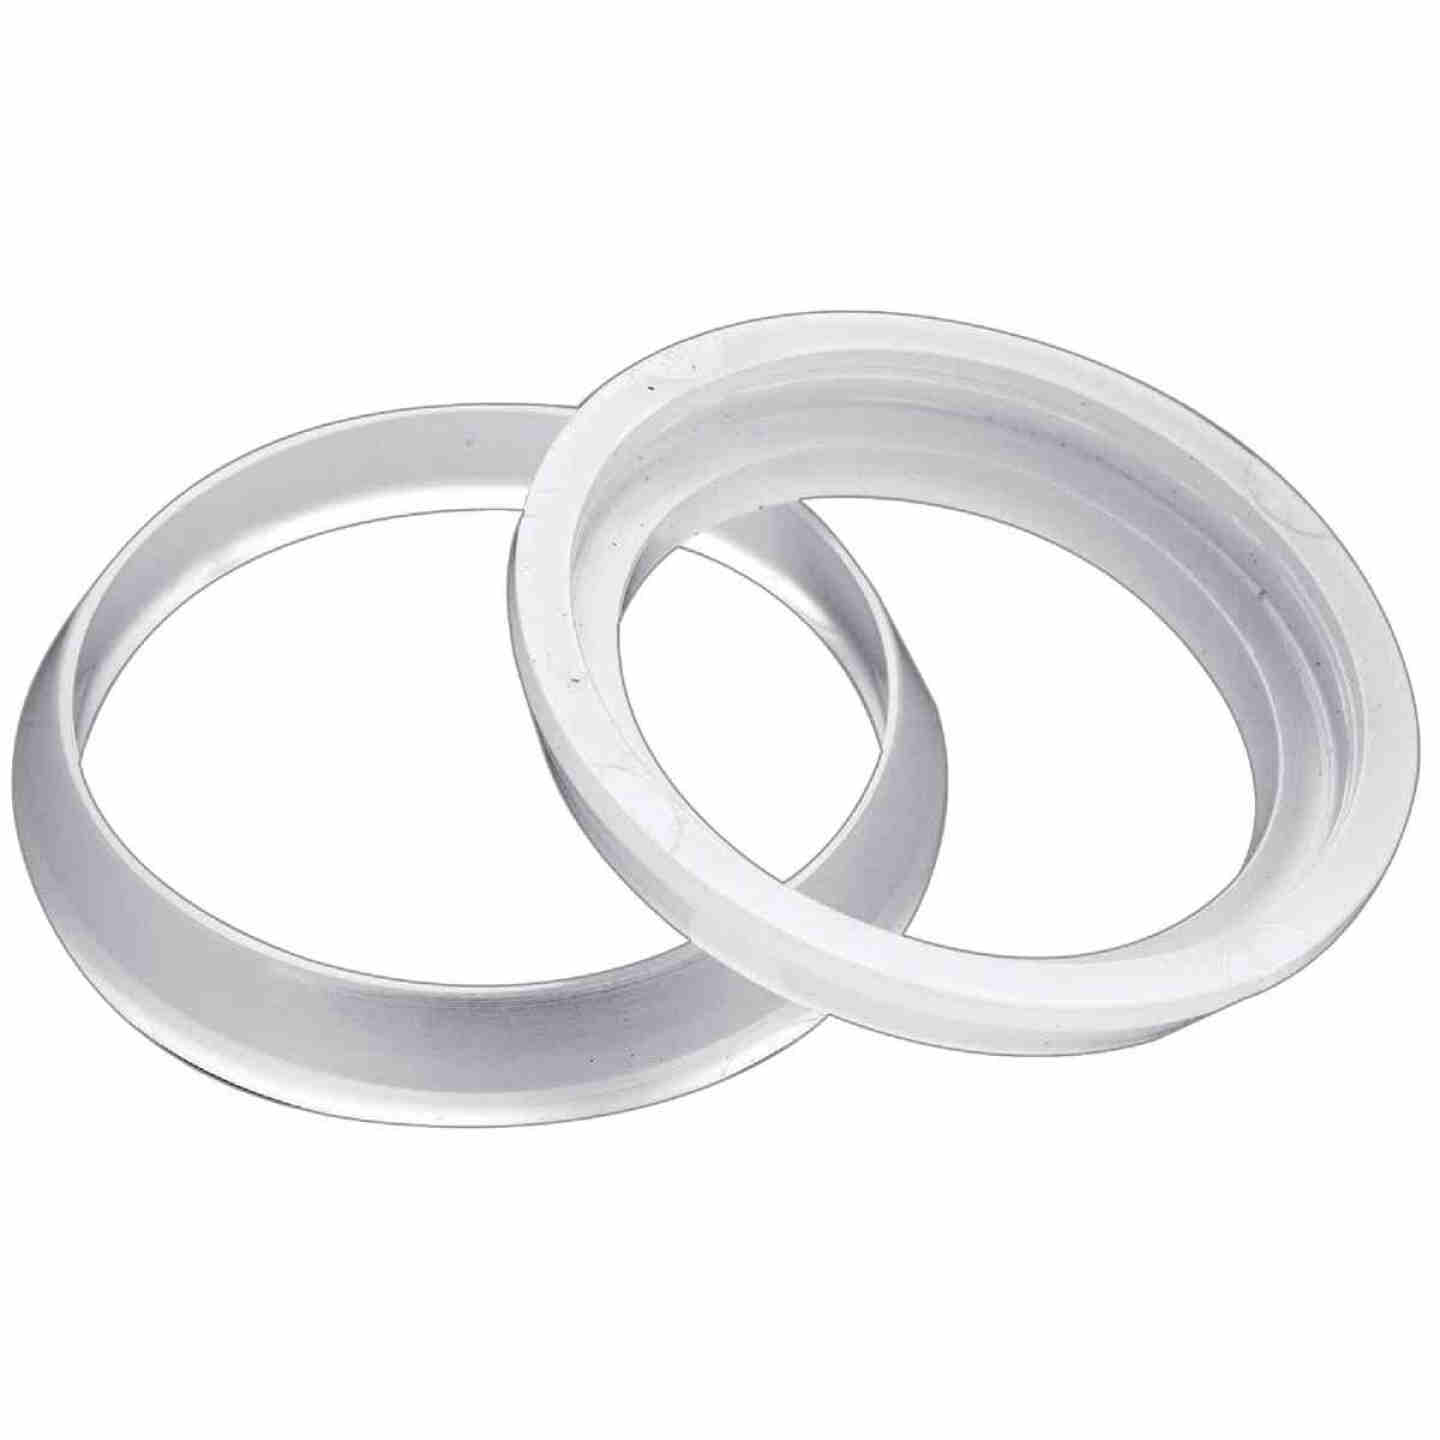 Do it 1-1/2 In. x 1-1/4 In. Clear Poly Slip Joint Washers (2 Pack) Image 1